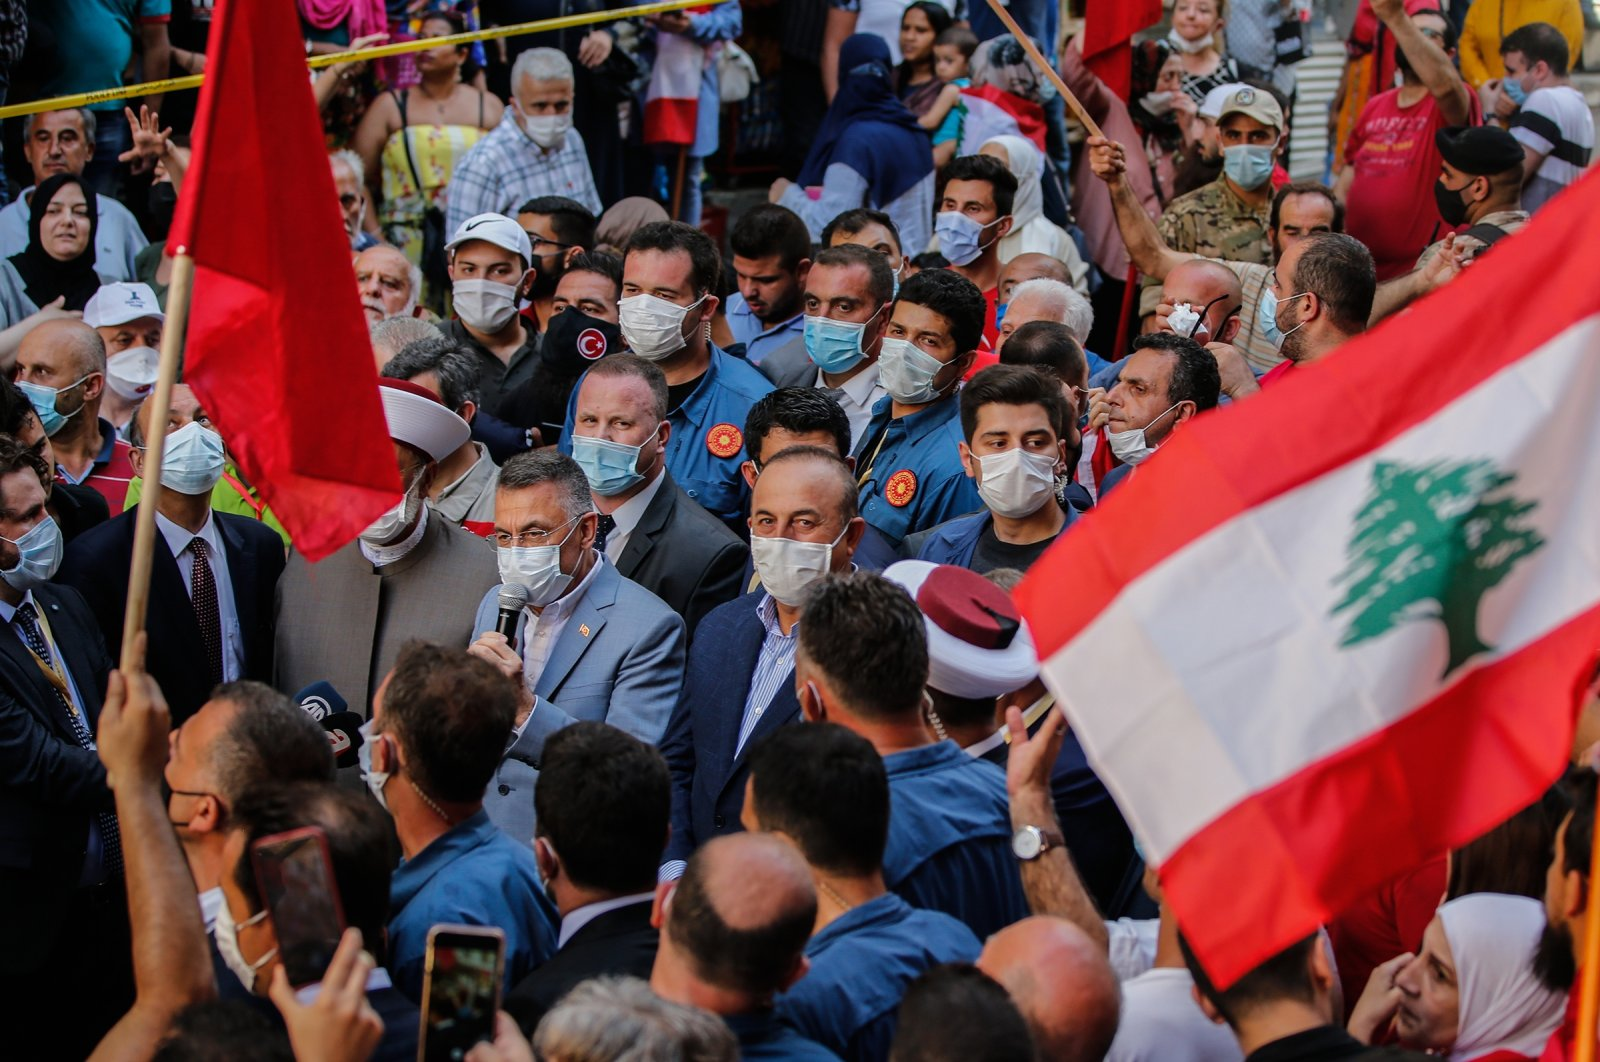 Turkey's Vice President Fuat Oktay and Foreign Minister Mevlüt Çavuşoğlu are seen encircled by an enthusiastic crowd in Beirut, Lebanon, Aug. 8, 2020 (AA Photo)